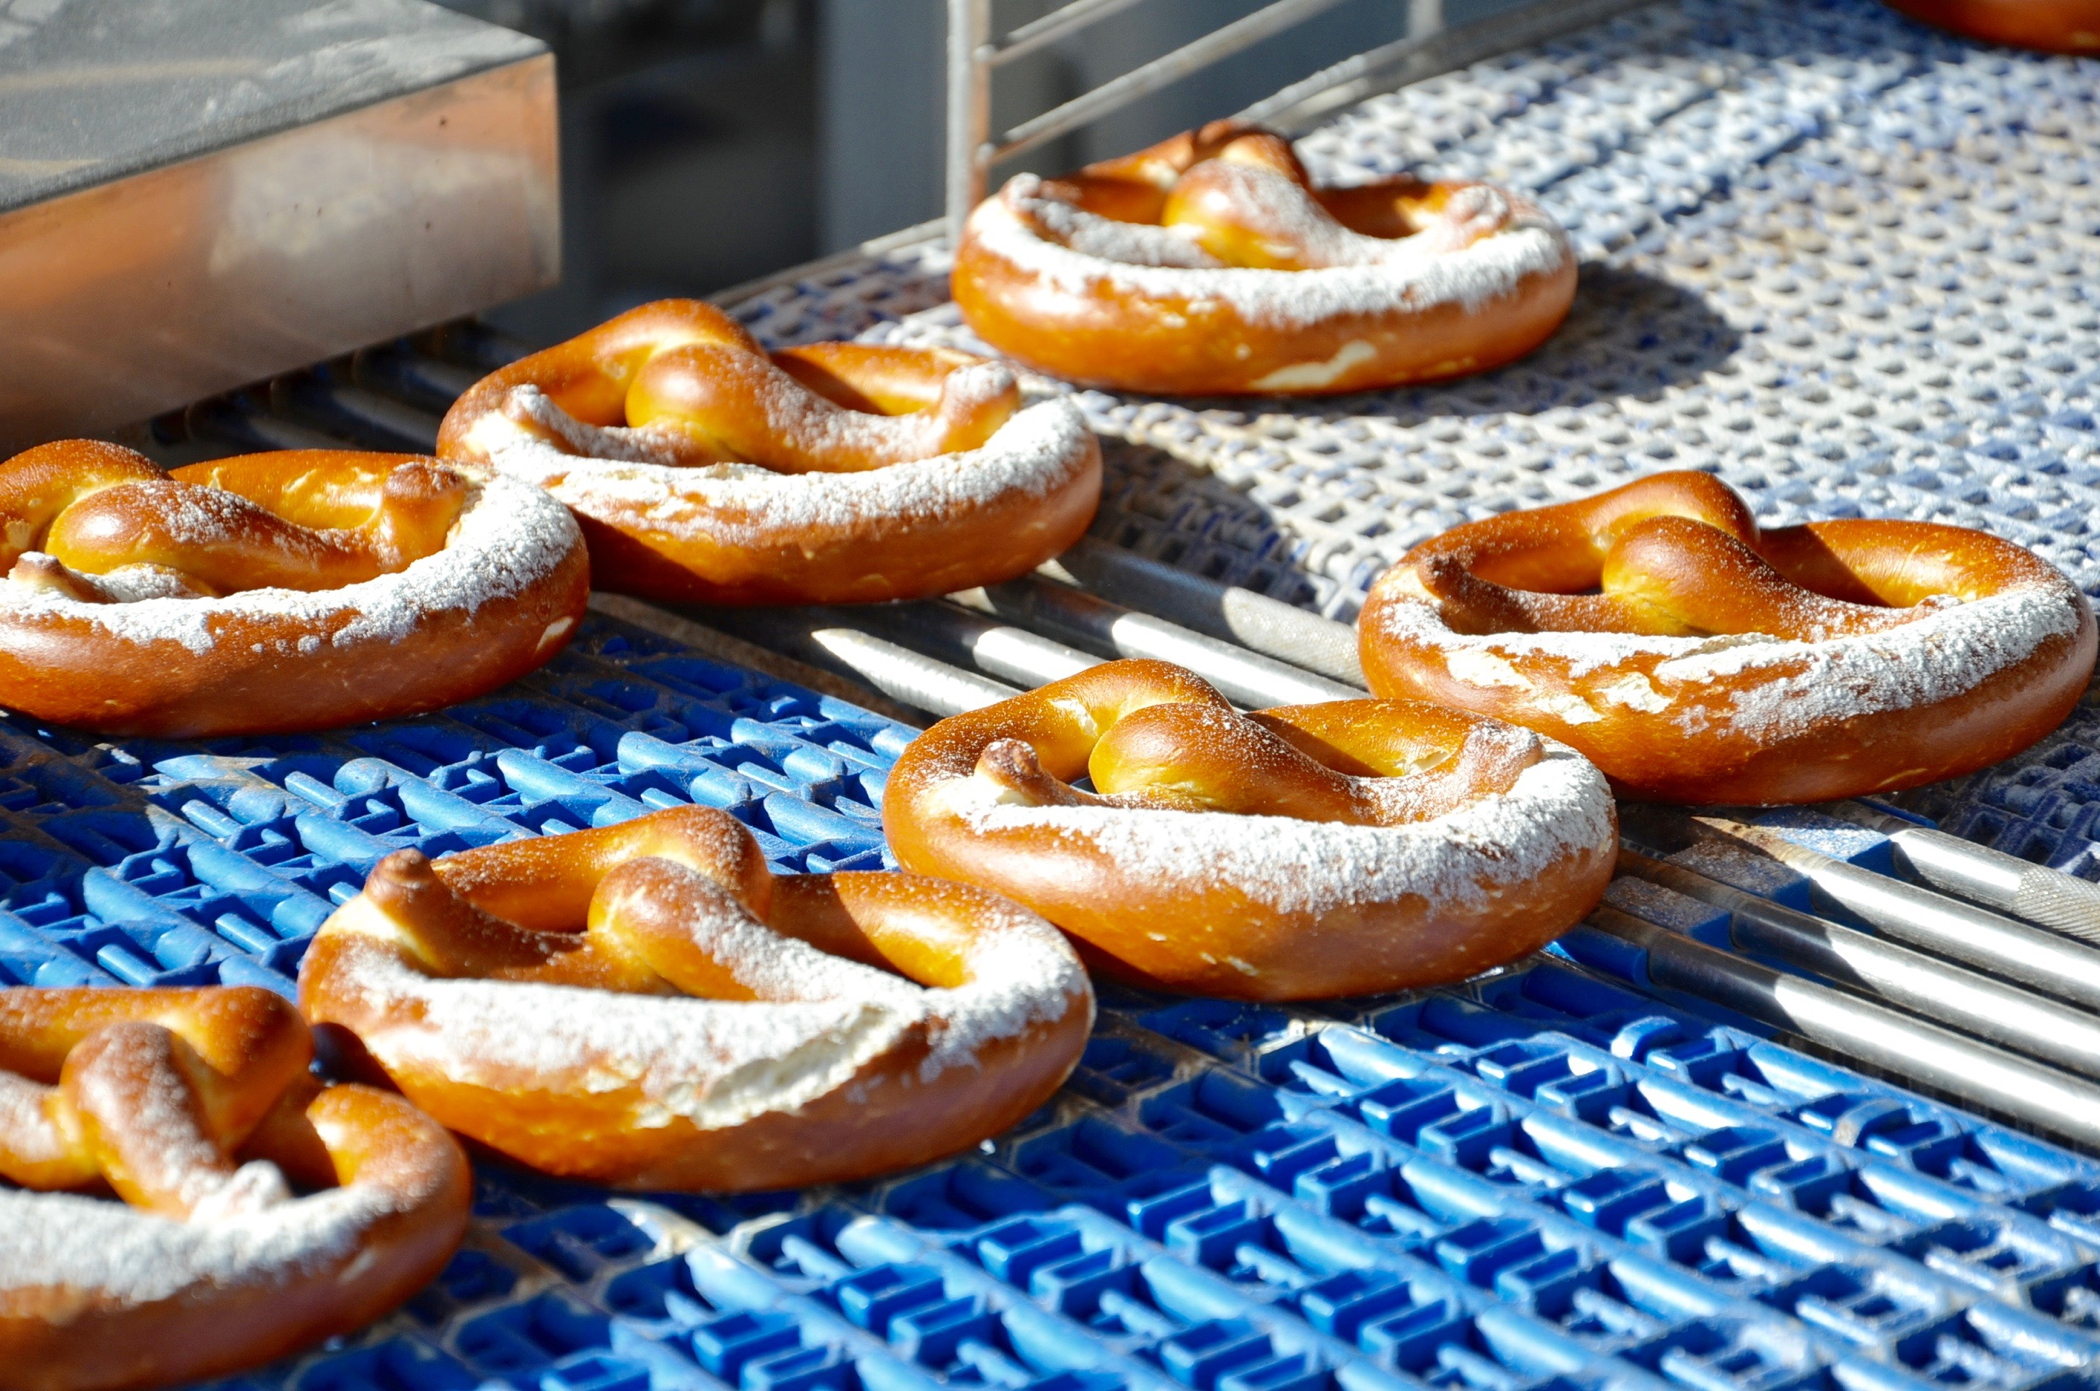 Pretzel in Nuremberg: the best Nuremberg sausage